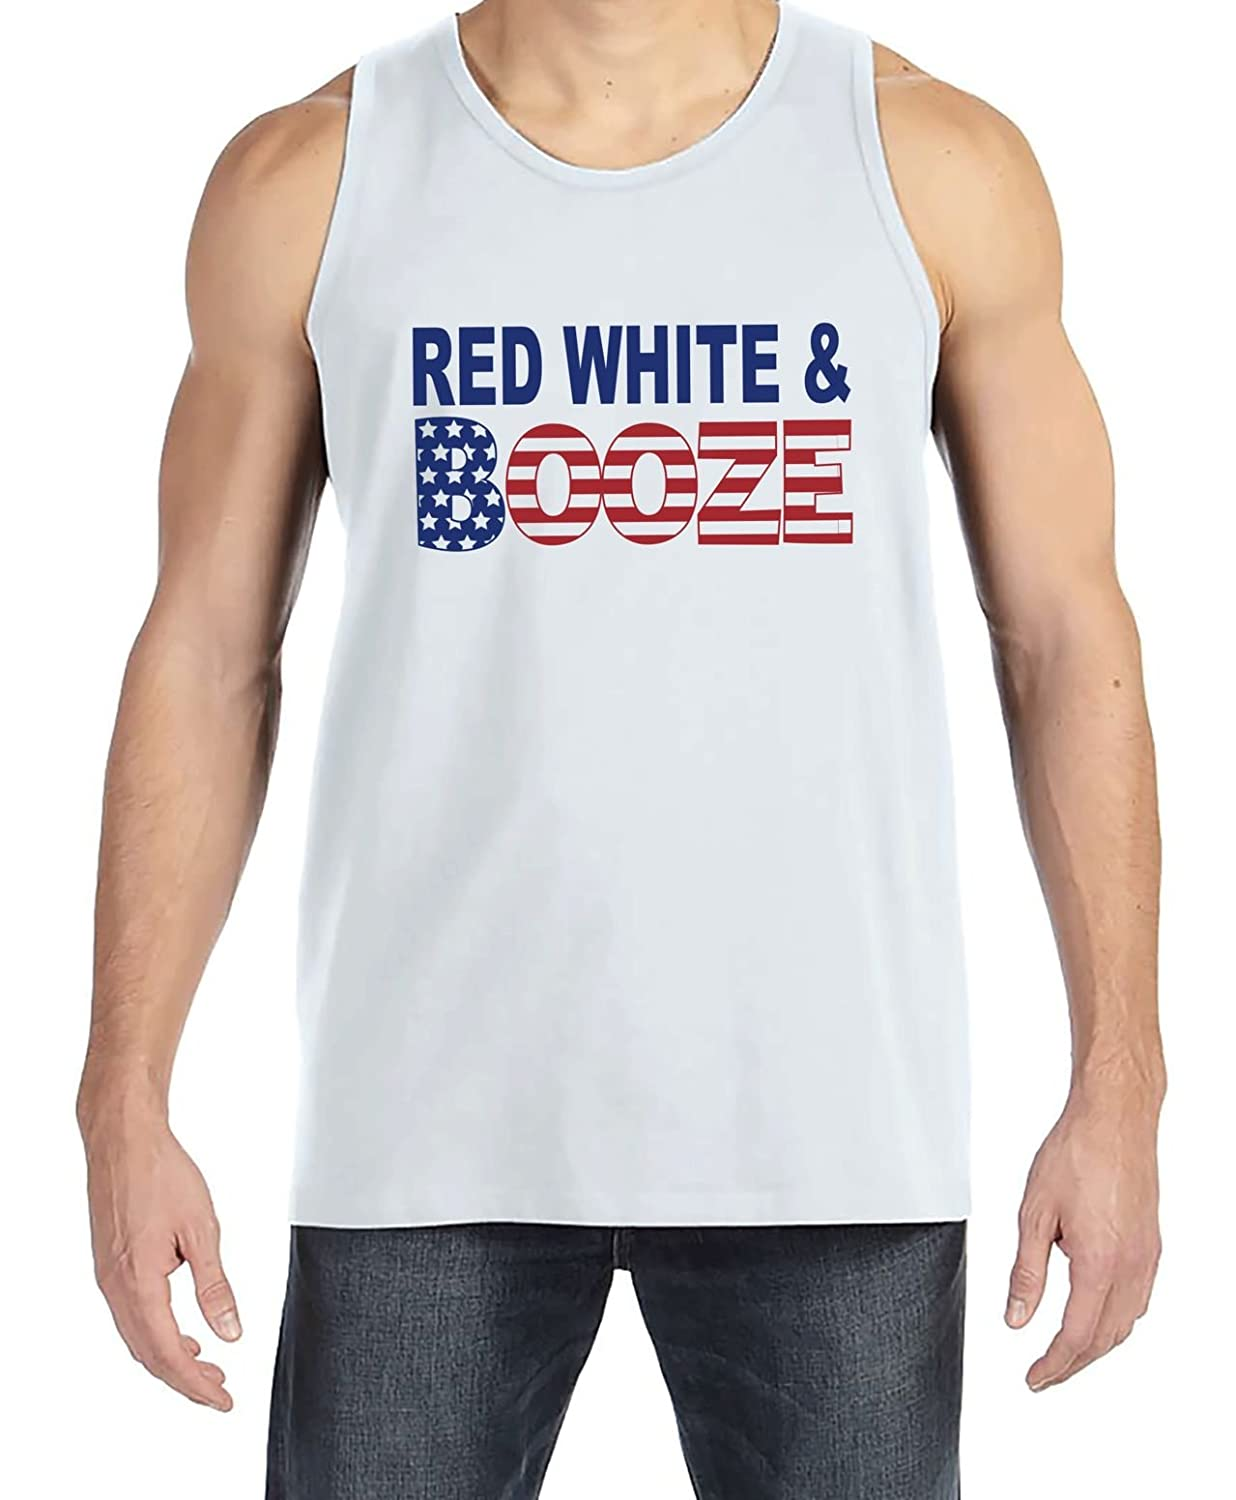 43bcf2cd3294b Source · Amazon com 7 ate 9 Apparel Men s Red White Booze 4th of July White  Source · American Flag Clothing ...